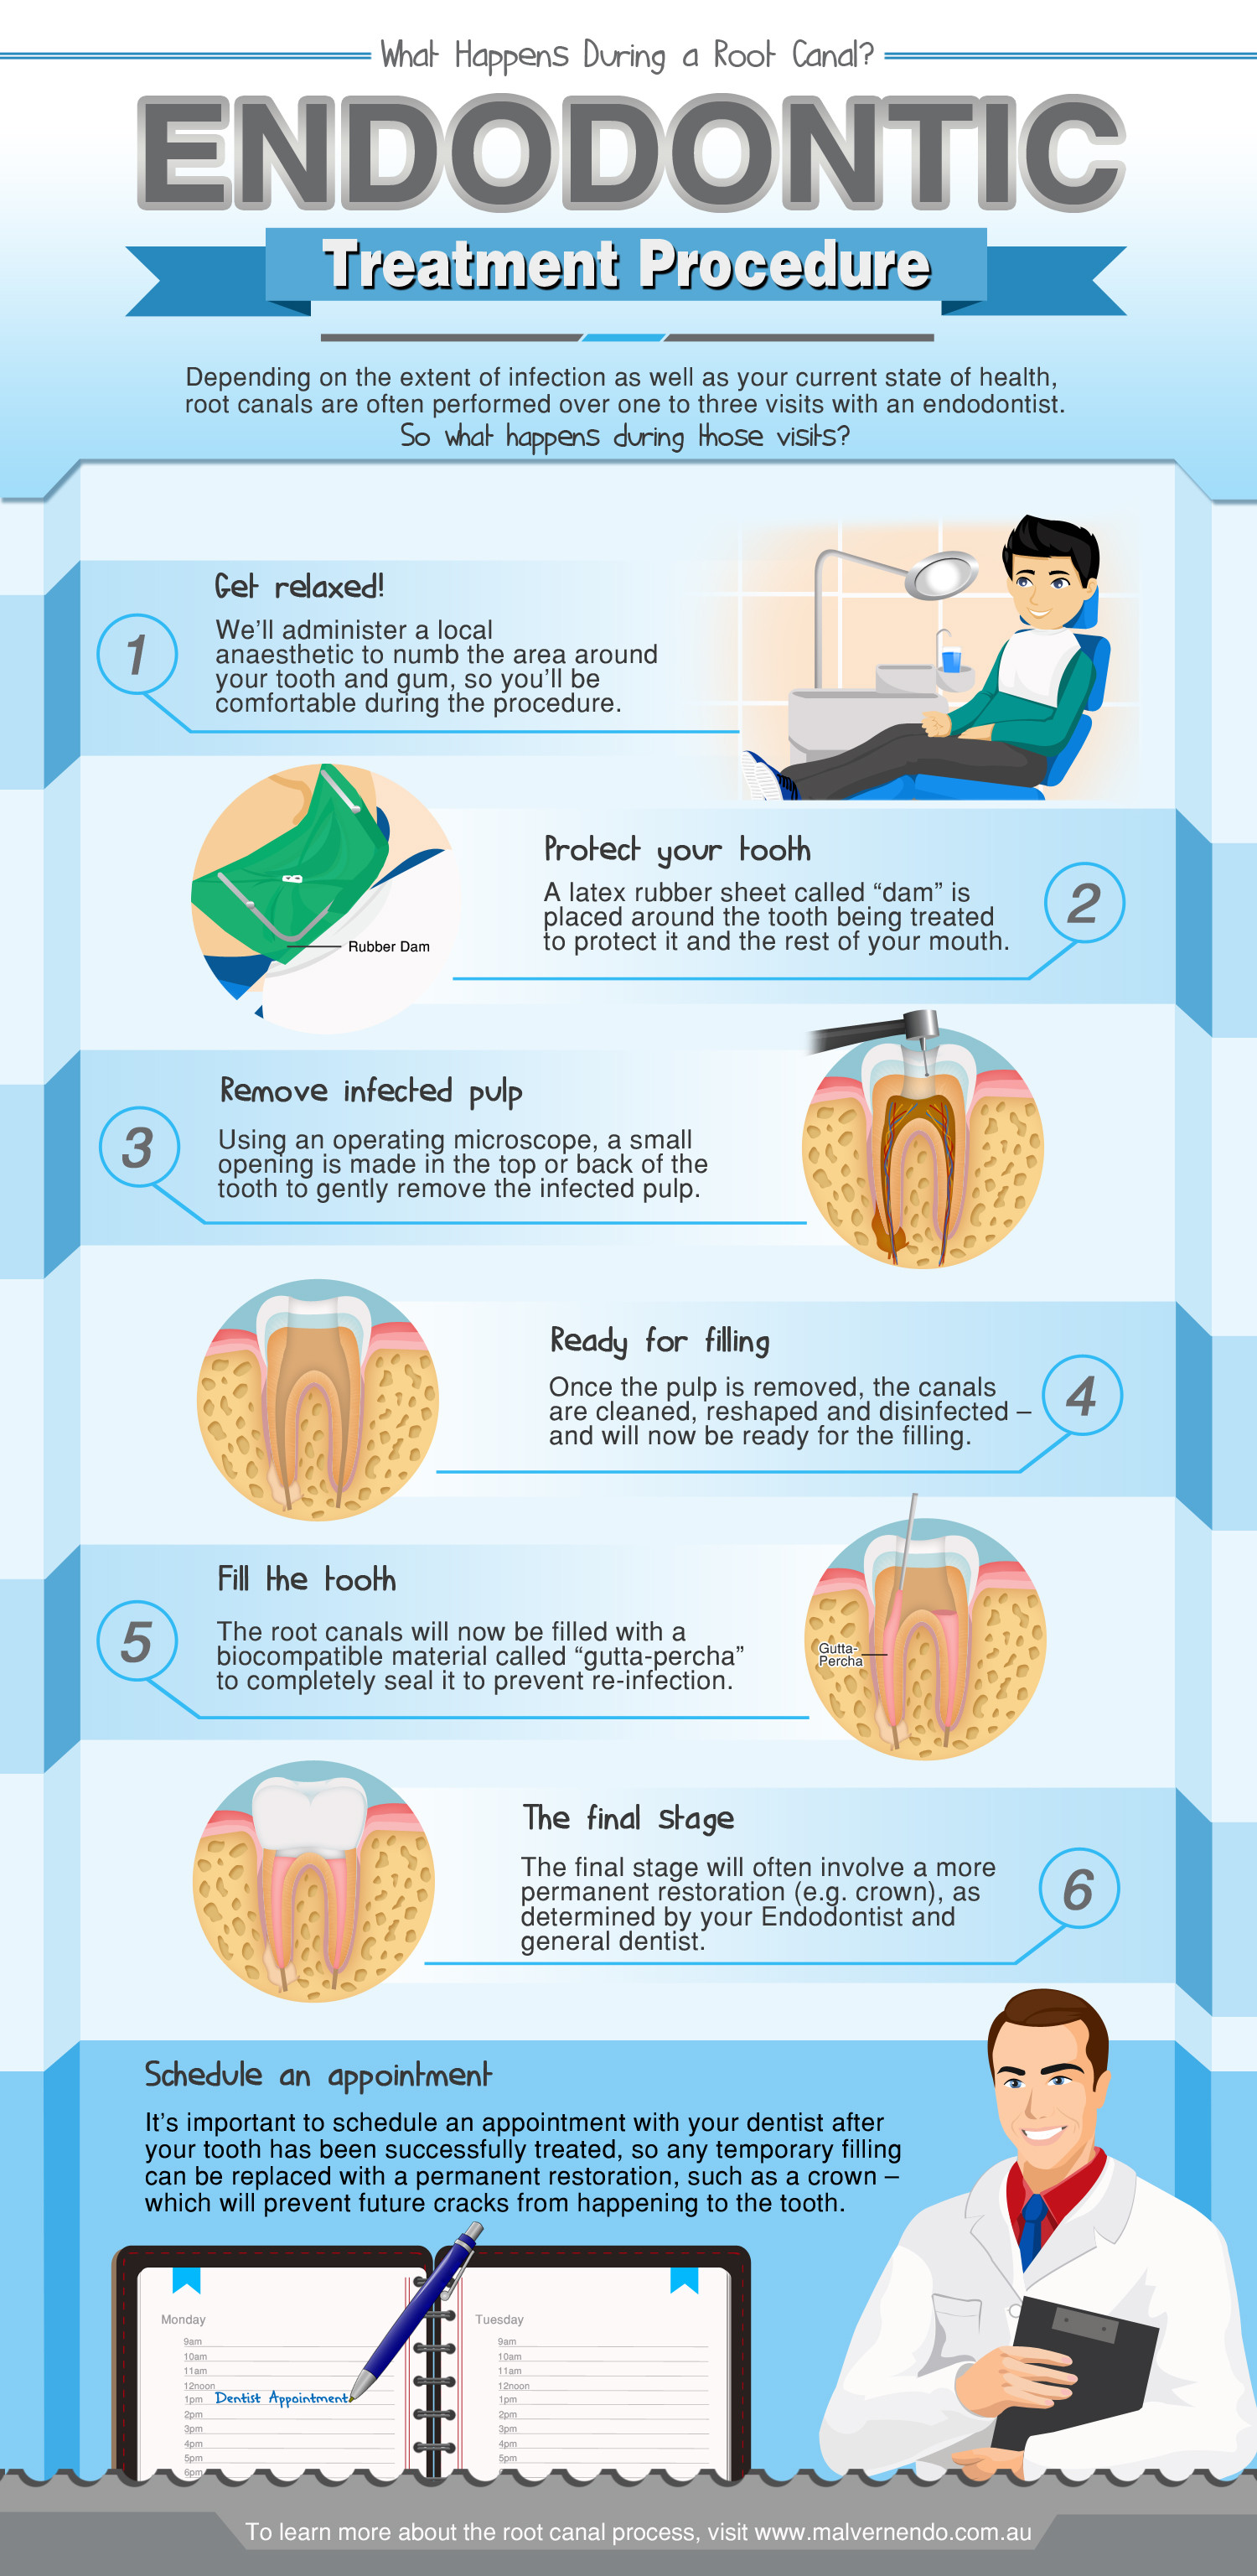 Endodontic Treatment Procedure: What Happens During a Root Canal? Infographic